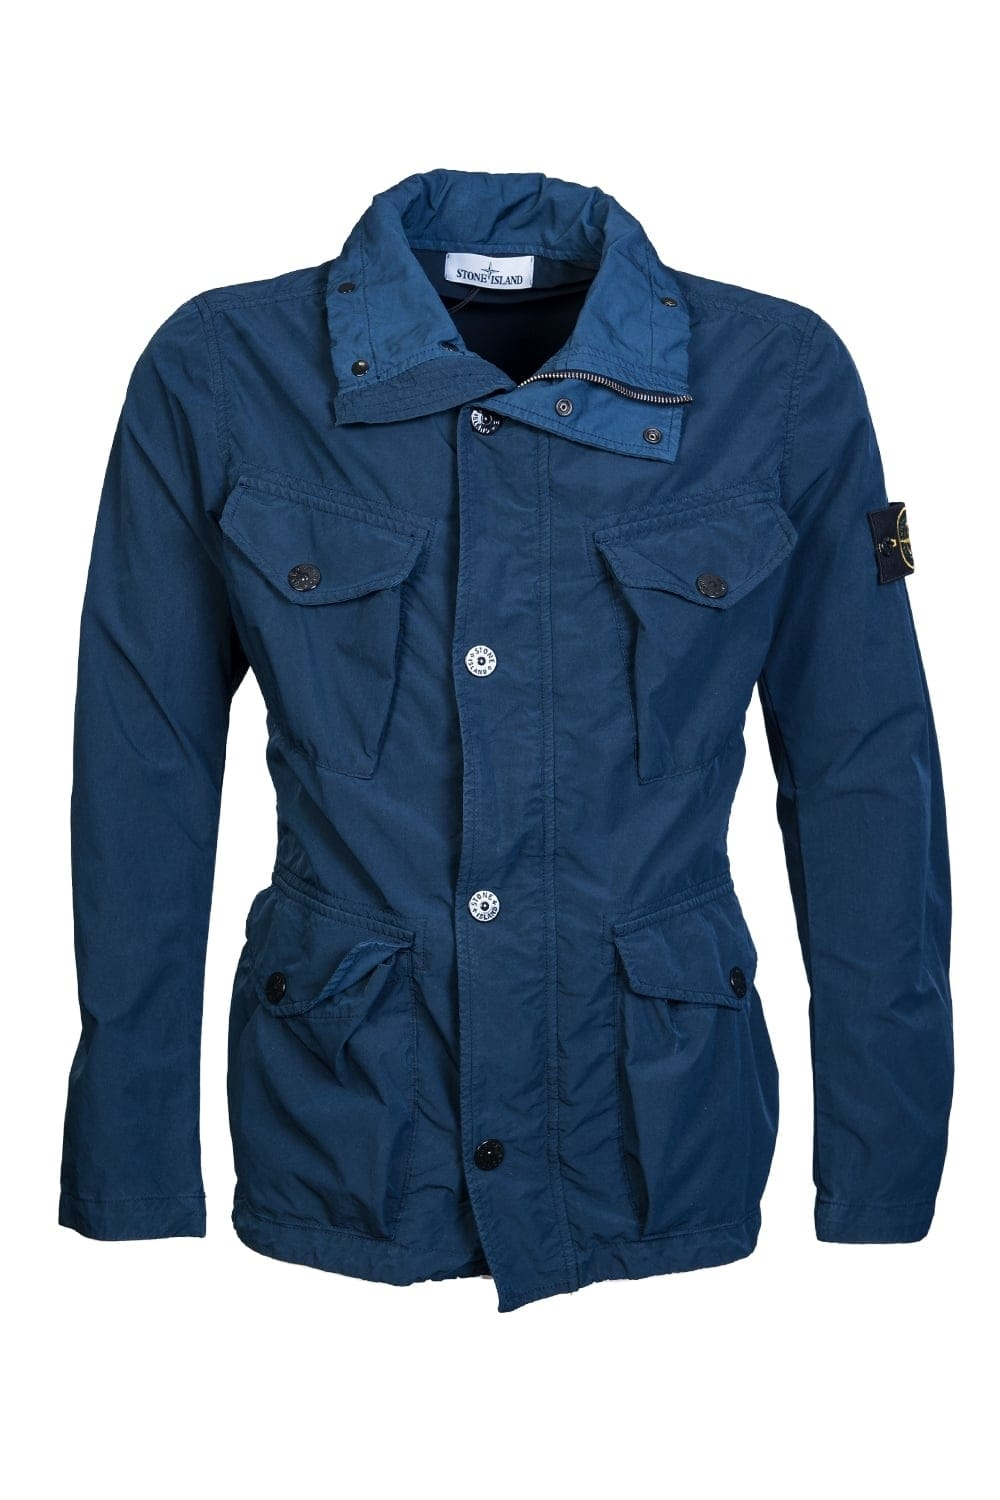 stone island jacket 661542551 clothing from sage clothing uk. Black Bedroom Furniture Sets. Home Design Ideas